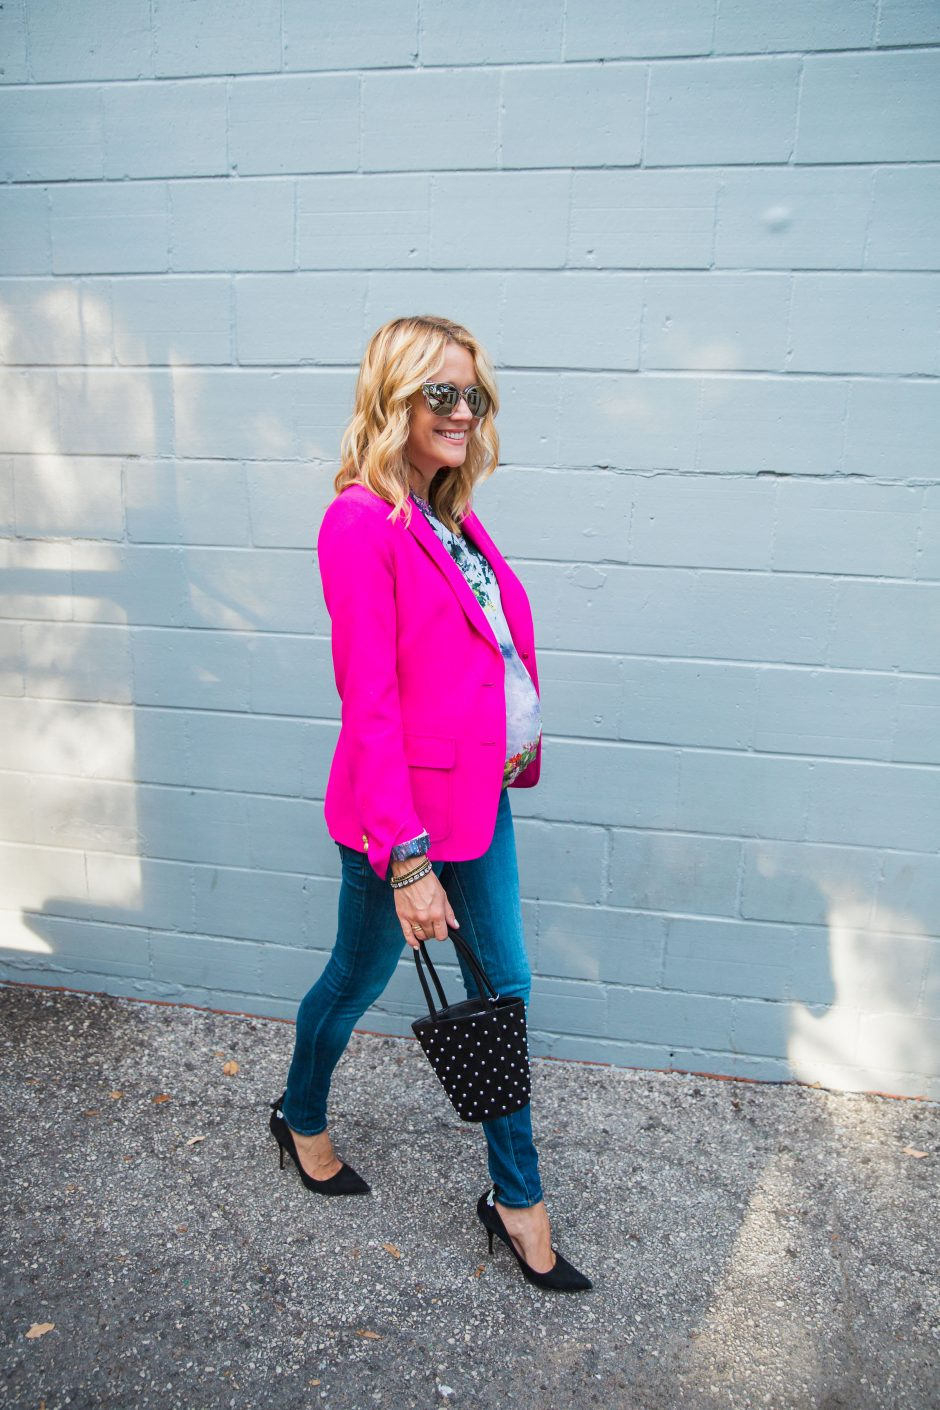 Pink blazer google images ailee_petrovic_160922_l86a4980